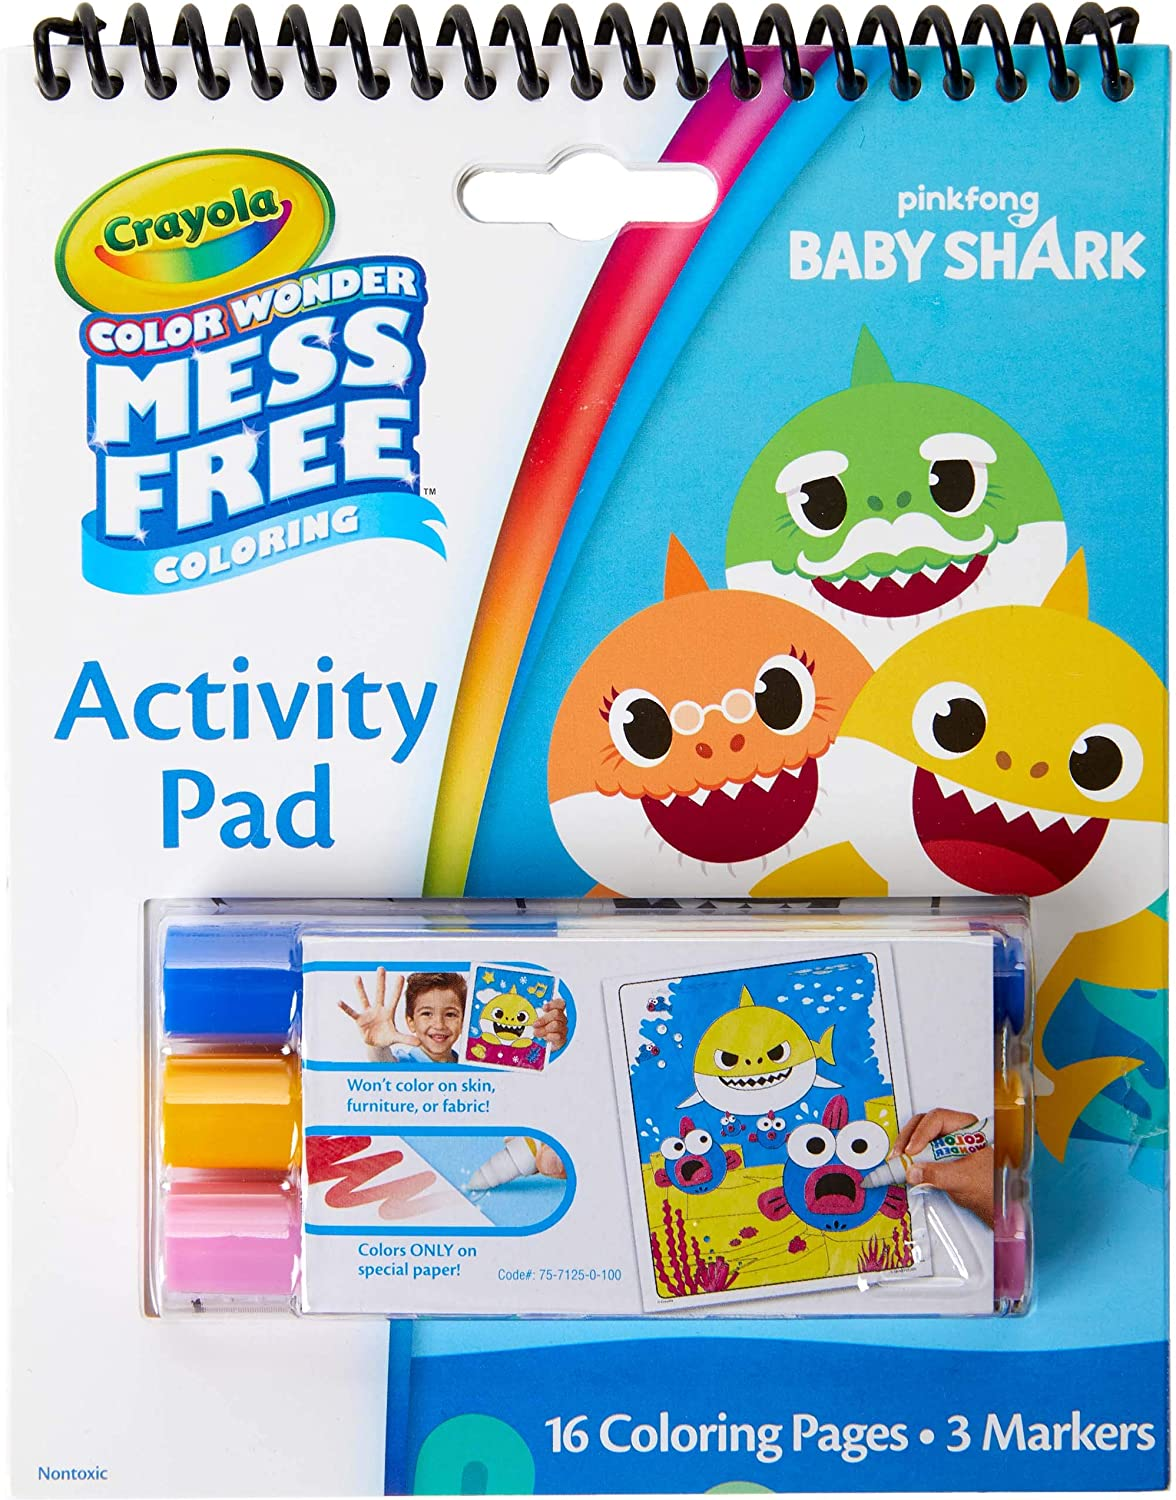 Crayola Baby Shark Color Wonder Travel Activity Pad, Mess Free Coloring,  Gift for Kids, 18, 18, 18, 18